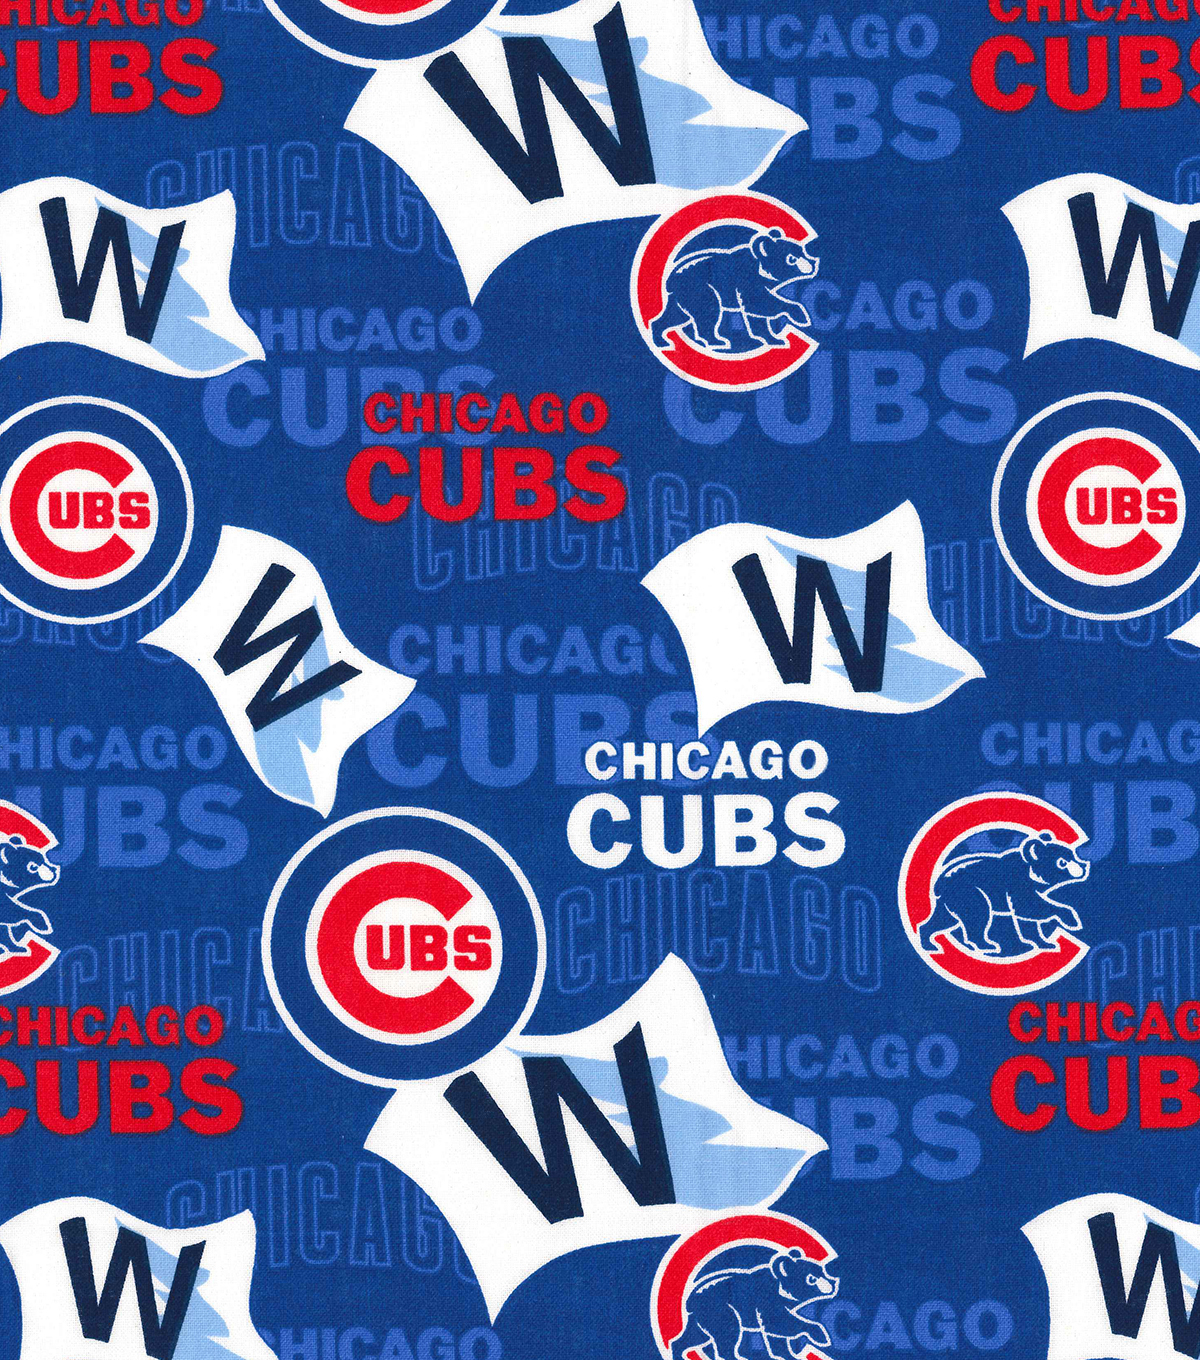 Chicago Cubs Cotton Fabric -Blue